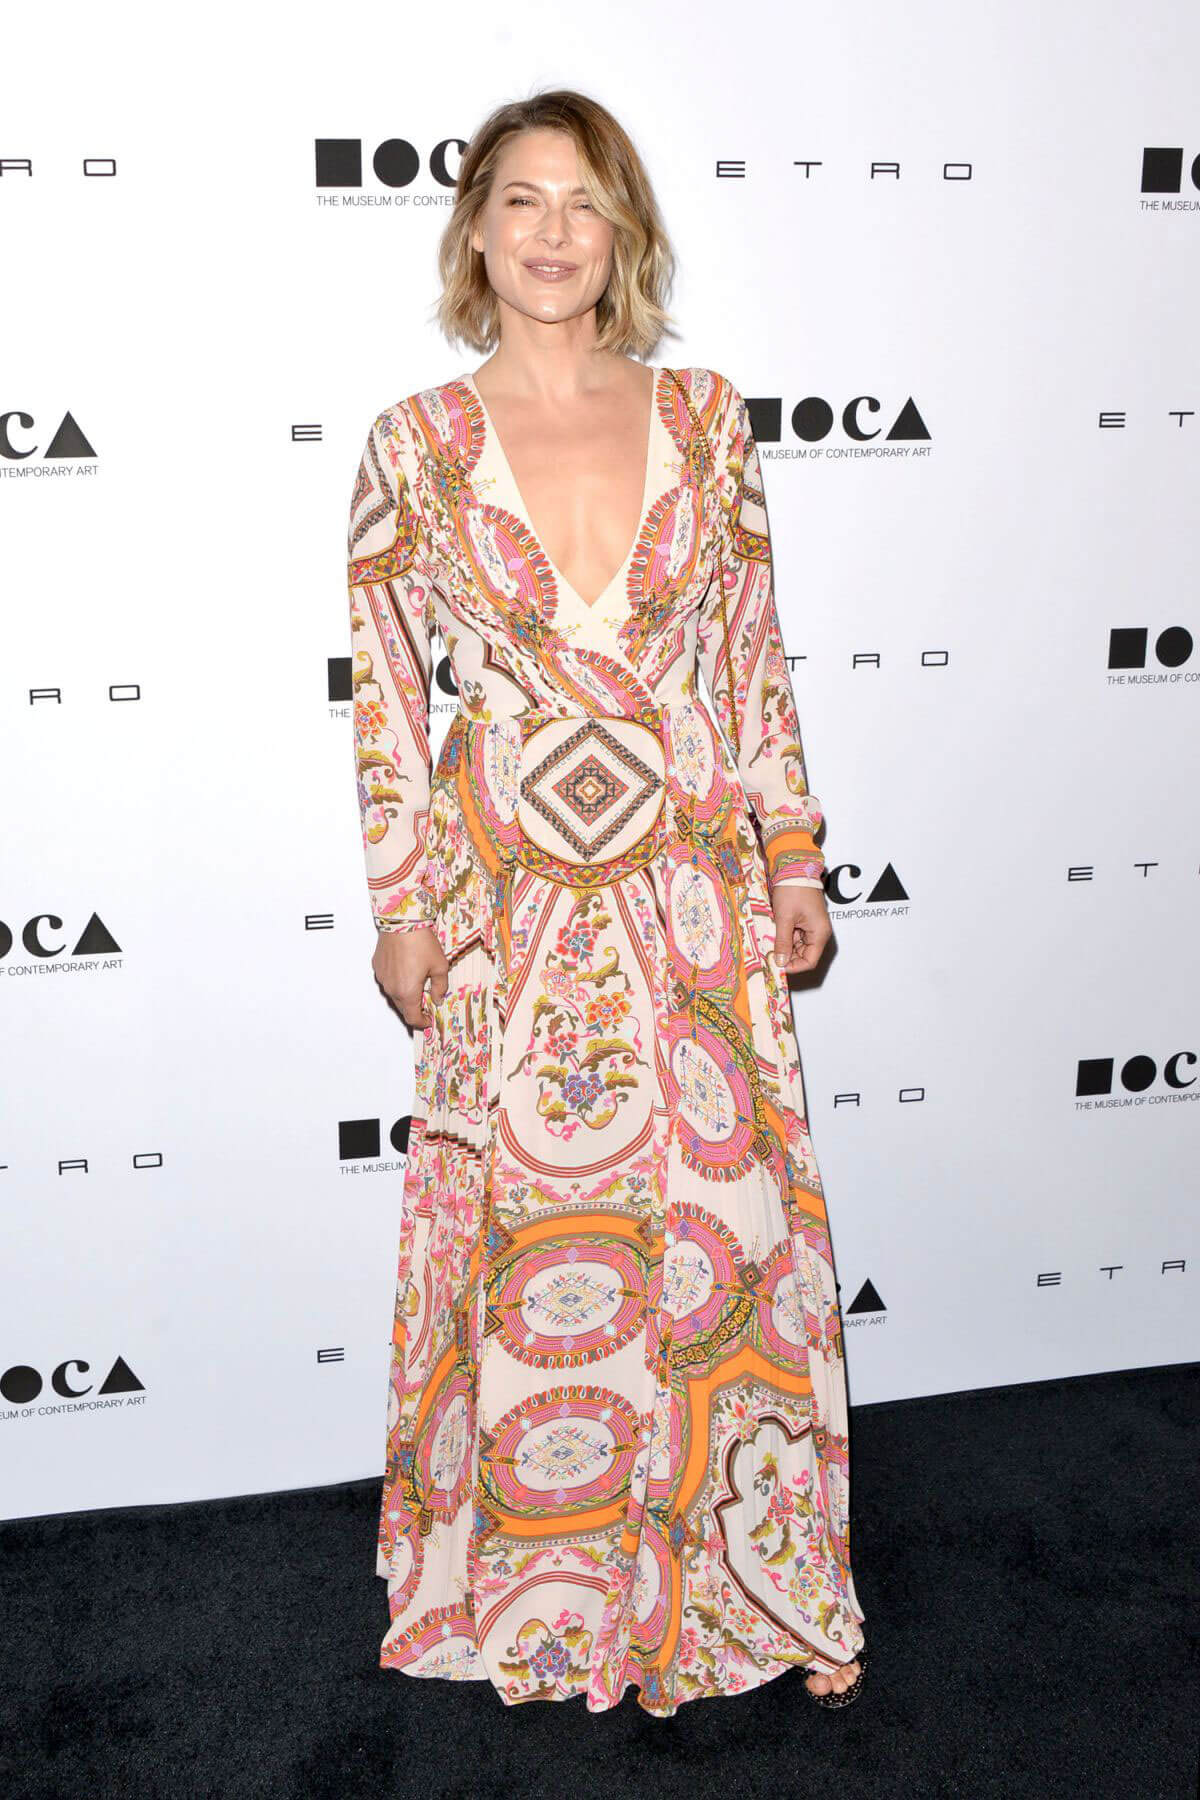 Ali Larter Stills at 10th Moca Distinguished Women in the Arts Luncheon in Los Angeles